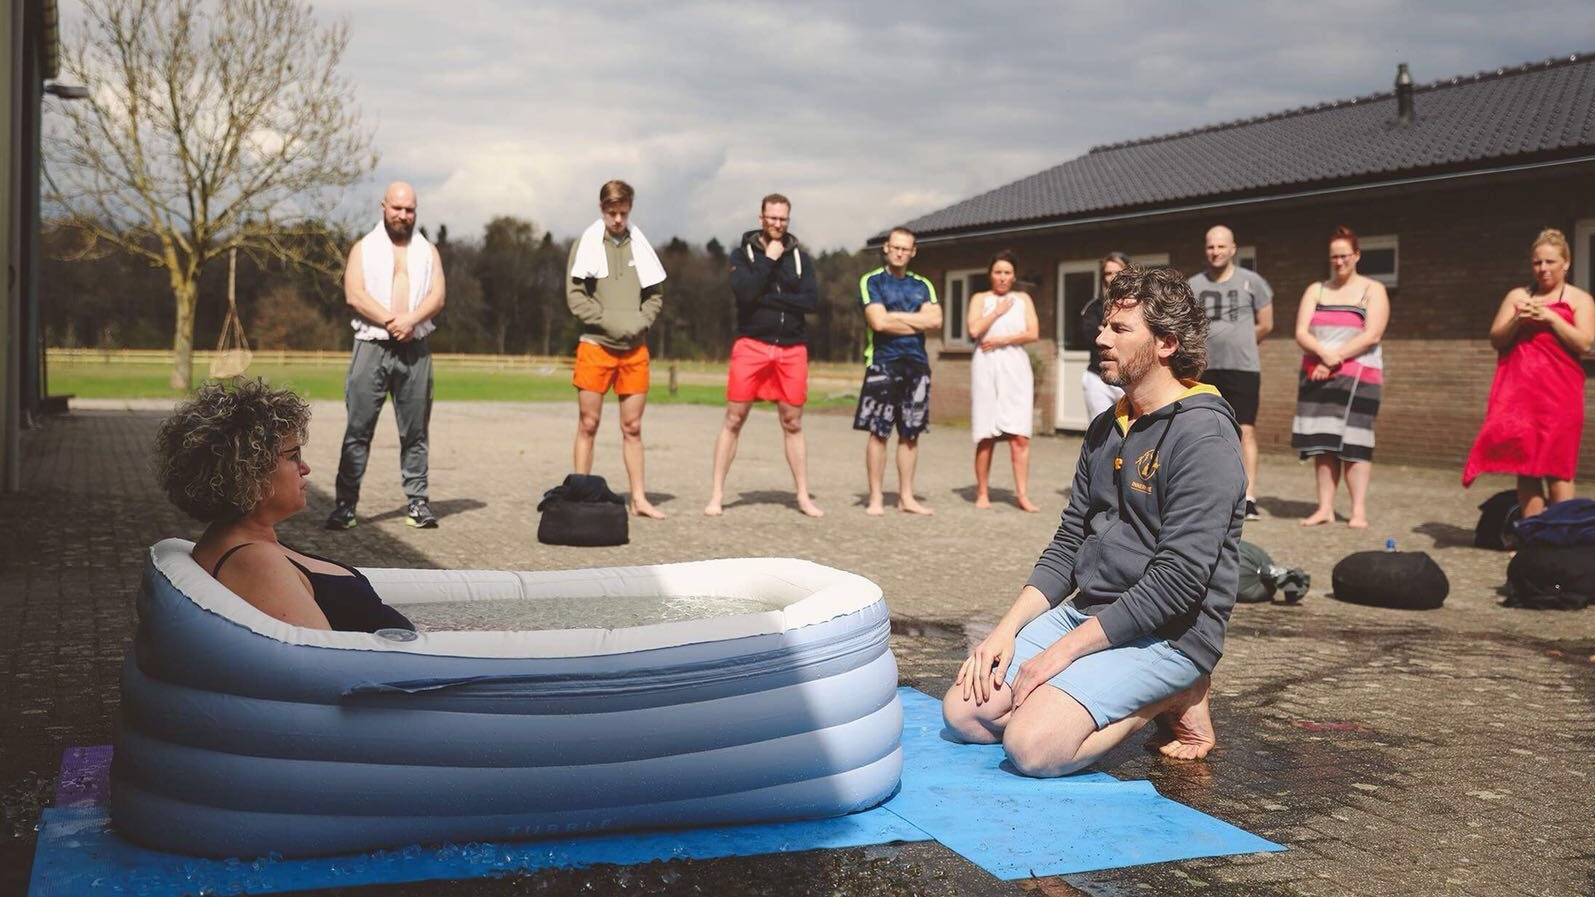 Image 13 of 15 - Experience the Wim Hof Method to get an impression of  at